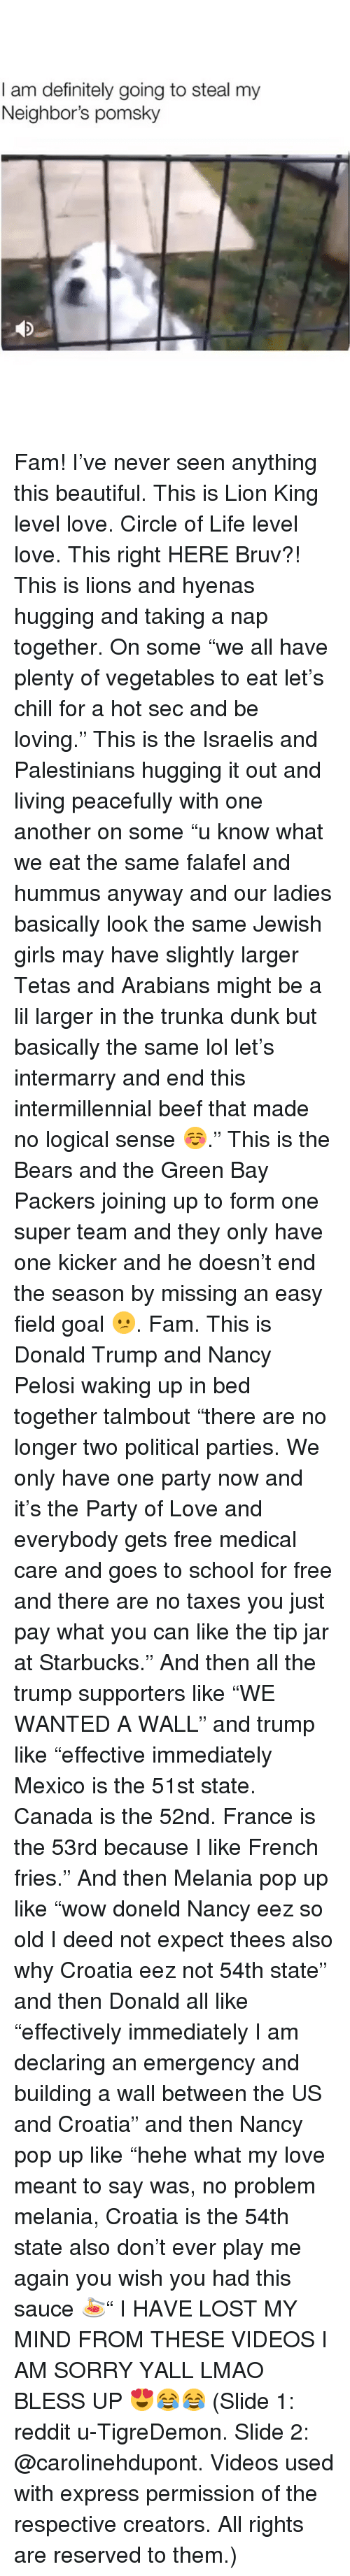 "Nancy Pelosi: I am definitely going to steal my  Neighbor's pomsky Fam! I've never seen anything this beautiful. This is Lion King level love. Circle of Life level love. This right HERE Bruv?! This is lions and hyenas hugging and taking a nap together. On some ""we all have plenty of vegetables to eat let's chill for a hot sec and be loving."" This is the Israelis and Palestinians hugging it out and living peacefully with one another on some ""u know what we eat the same falafel and hummus anyway and our ladies basically look the same Jewish girls may have slightly larger Tetas and Arabians might be a lil larger in the trunka dunk but basically the same lol let's intermarry and end this intermillennial beef that made no logical sense ☺️."" This is the Bears and the Green Bay Packers joining up to form one super team and they only have one kicker and he doesn't end the season by missing an easy field goal 😕. Fam. This is Donald Trump and Nancy Pelosi waking up in bed together talmbout ""there are no longer two political parties. We only have one party now and it's the Party of Love and everybody gets free medical care and goes to school for free and there are no taxes you just pay what you can like the tip jar at Starbucks."" And then all the trump supporters like ""WE WANTED A WALL"" and trump like ""effective immediately Mexico is the 51st state. Canada is the 52nd. France is the 53rd because I like French fries."" And then Melania pop up like ""wow doneld Nancy eez so old I deed not expect thees also why Croatia eez not 54th state"" and then Donald all like ""effectively immediately I am declaring an emergency and building a wall between the US and Croatia"" and then Nancy pop up like ""hehe what my love meant to say was, no problem melania, Croatia is the 54th state also don't ever play me again you wish you had this sauce 🍝"" I HAVE LOST MY MIND FROM THESE VIDEOS I AM SORRY YALL LMAO BLESS UP 😍😂😂 (Slide 1: reddit u-TigreDemon. Slide 2: @carolinehdupont. Videos used with express permission of the respective creators. All rights are reserved to them.)"